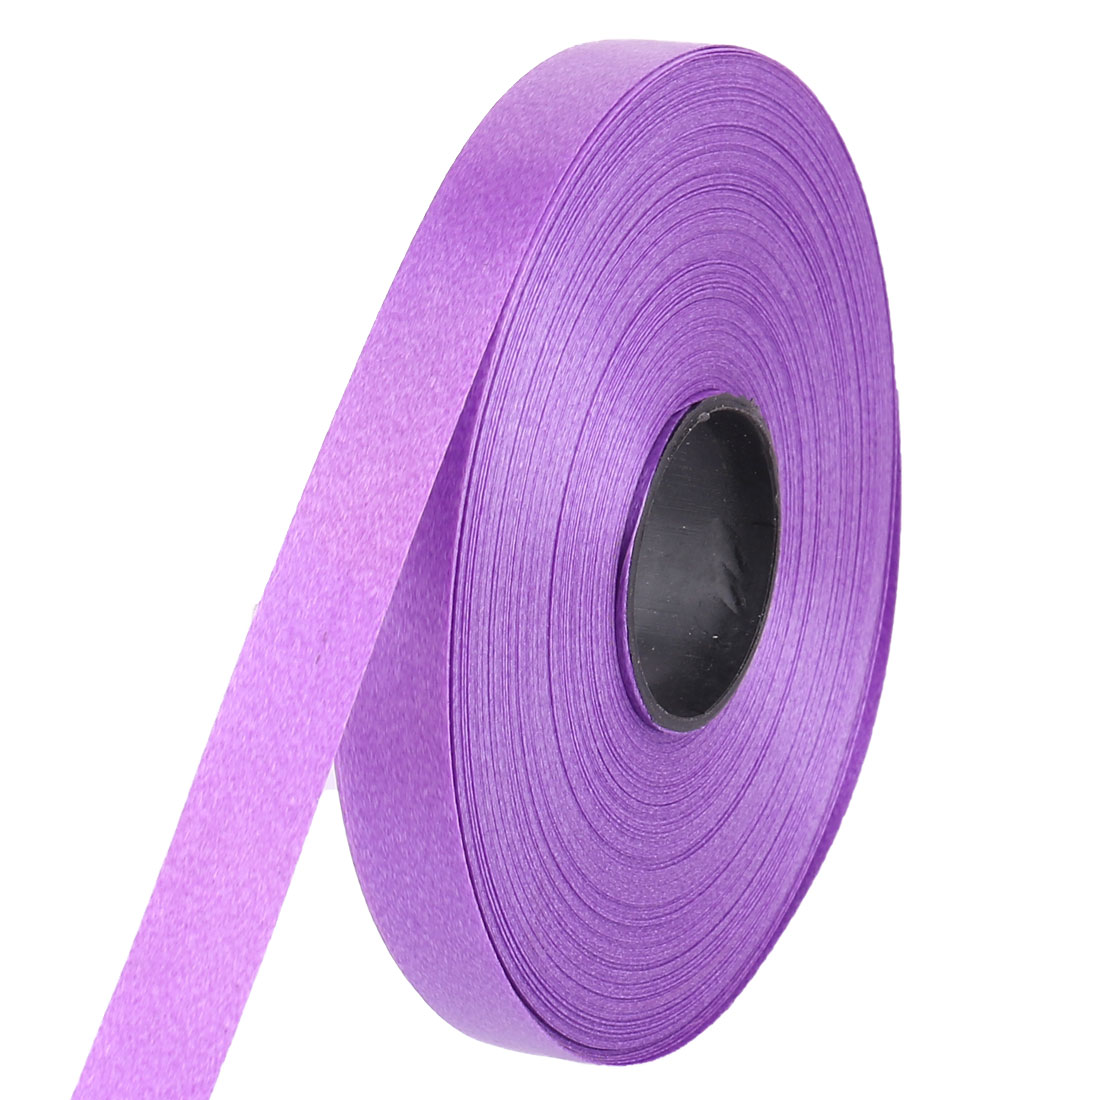 1/2 Inch Wide Polyester Solid Satin Ribbon Roll 30M 33 Yard Purple